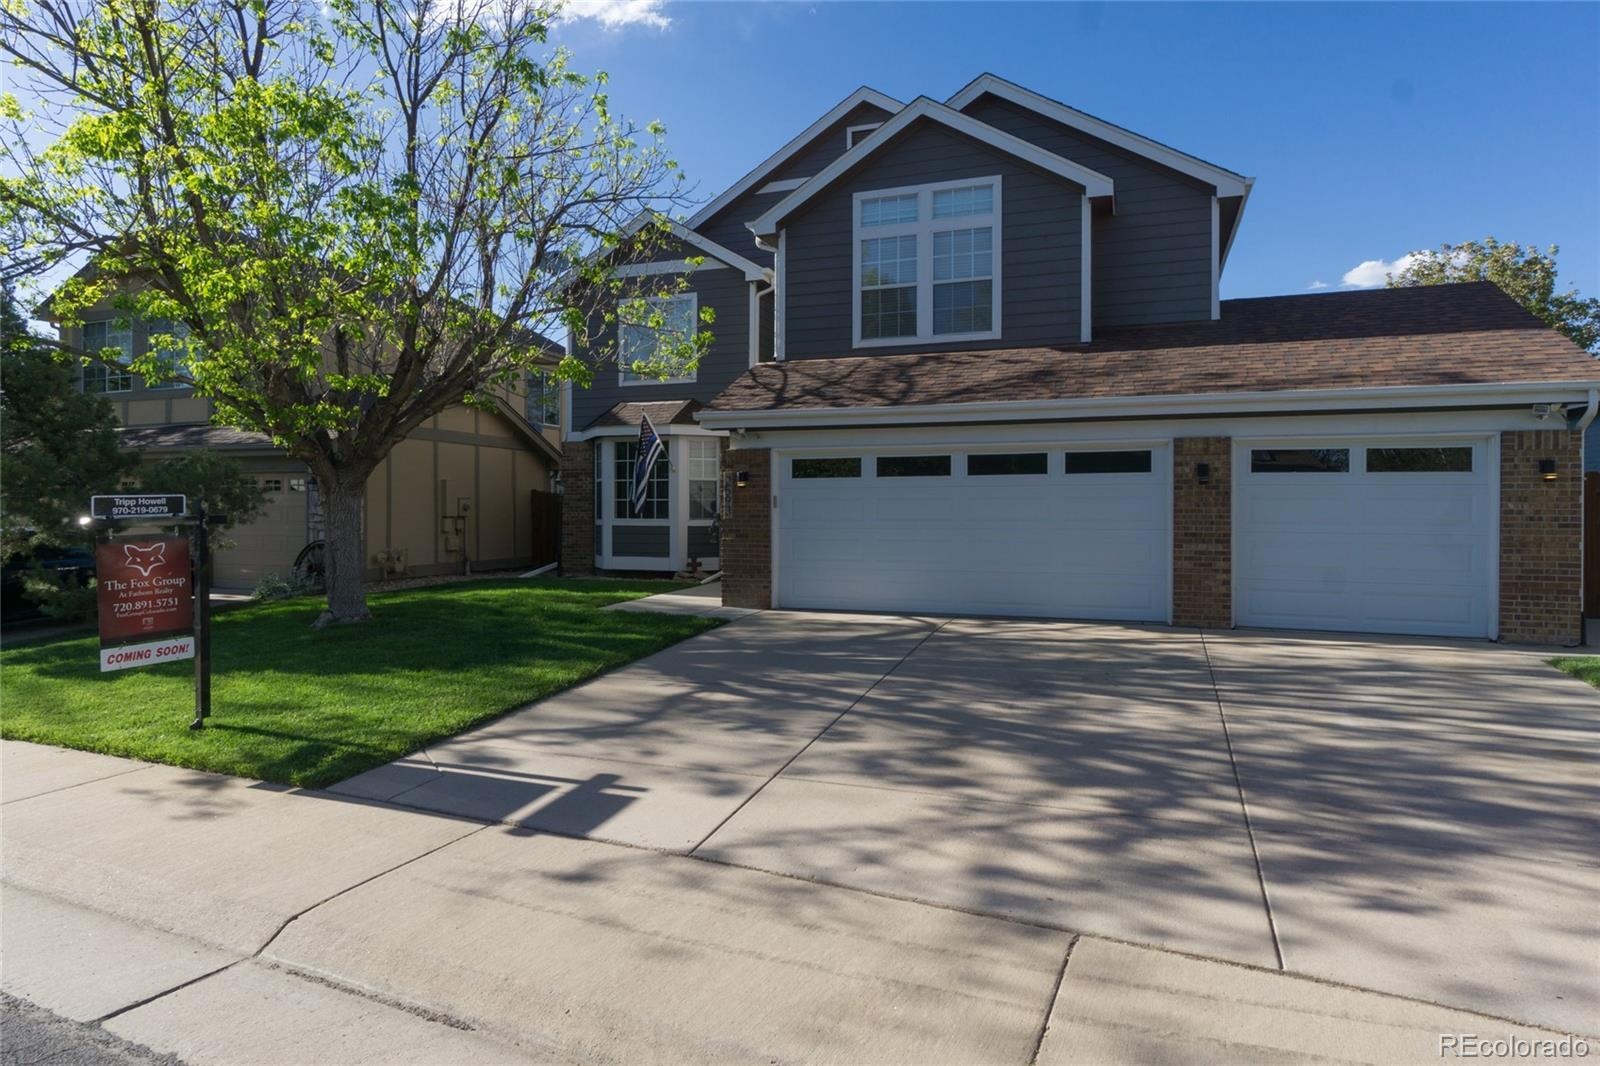 2593 W 109th Avenue, Westminster, CO 80234 - #: 7837038